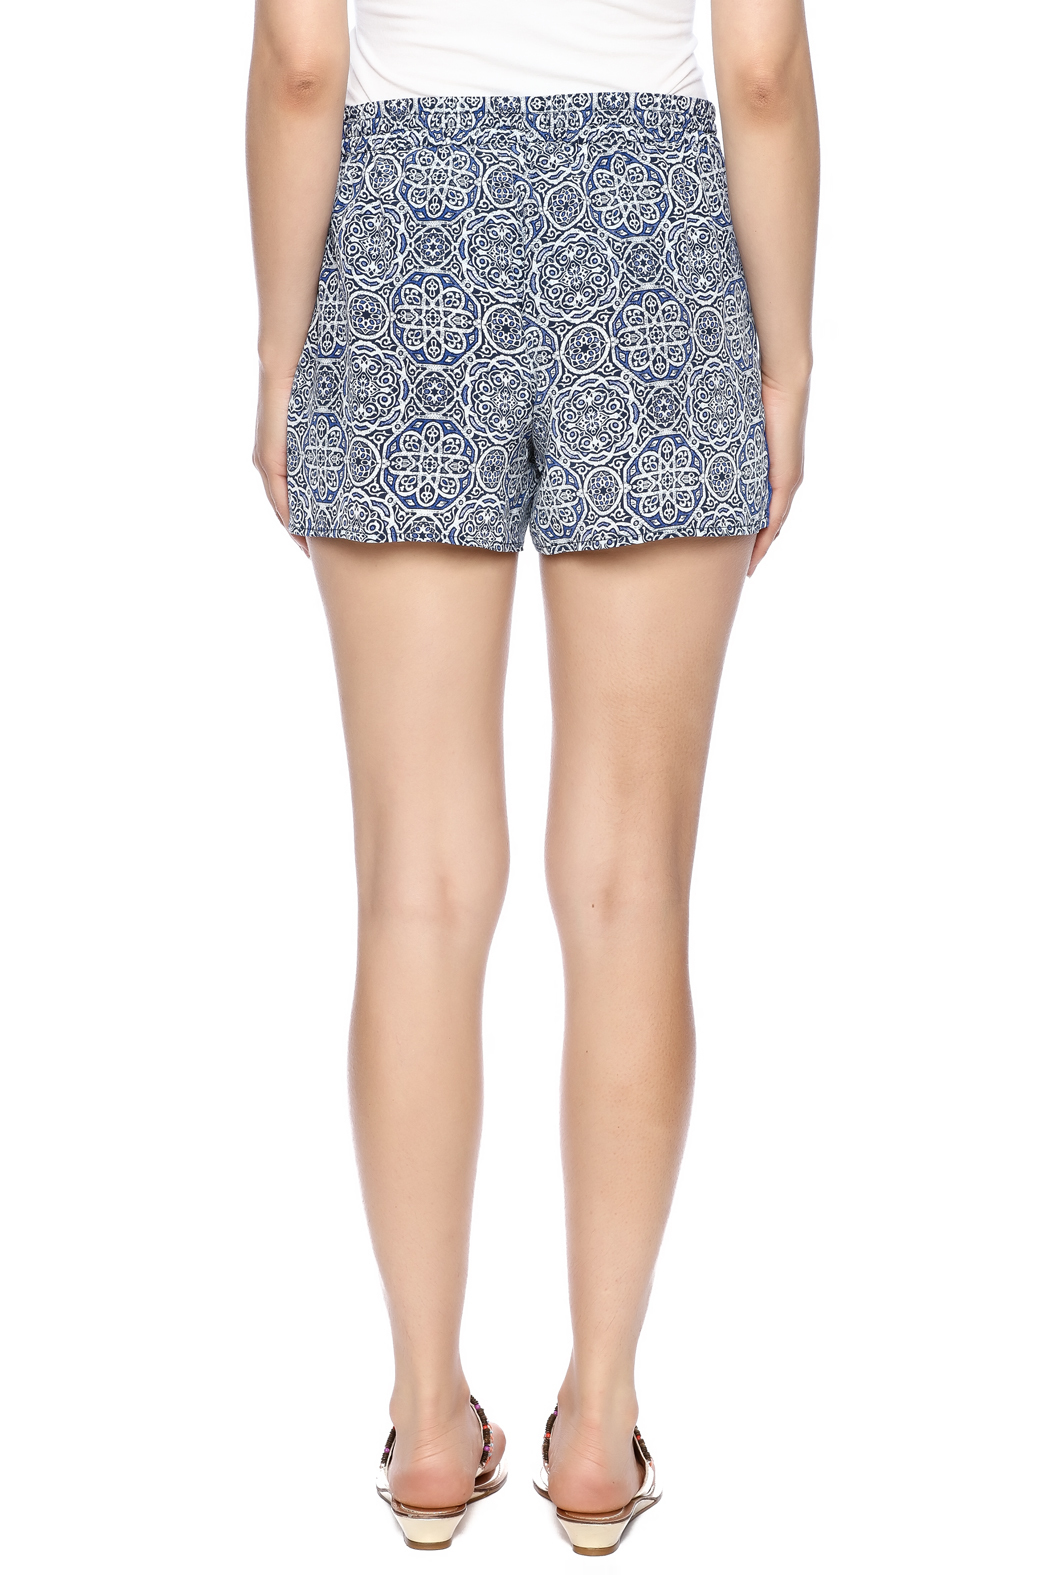 Joie Sinclair Shorts - Back Cropped Image